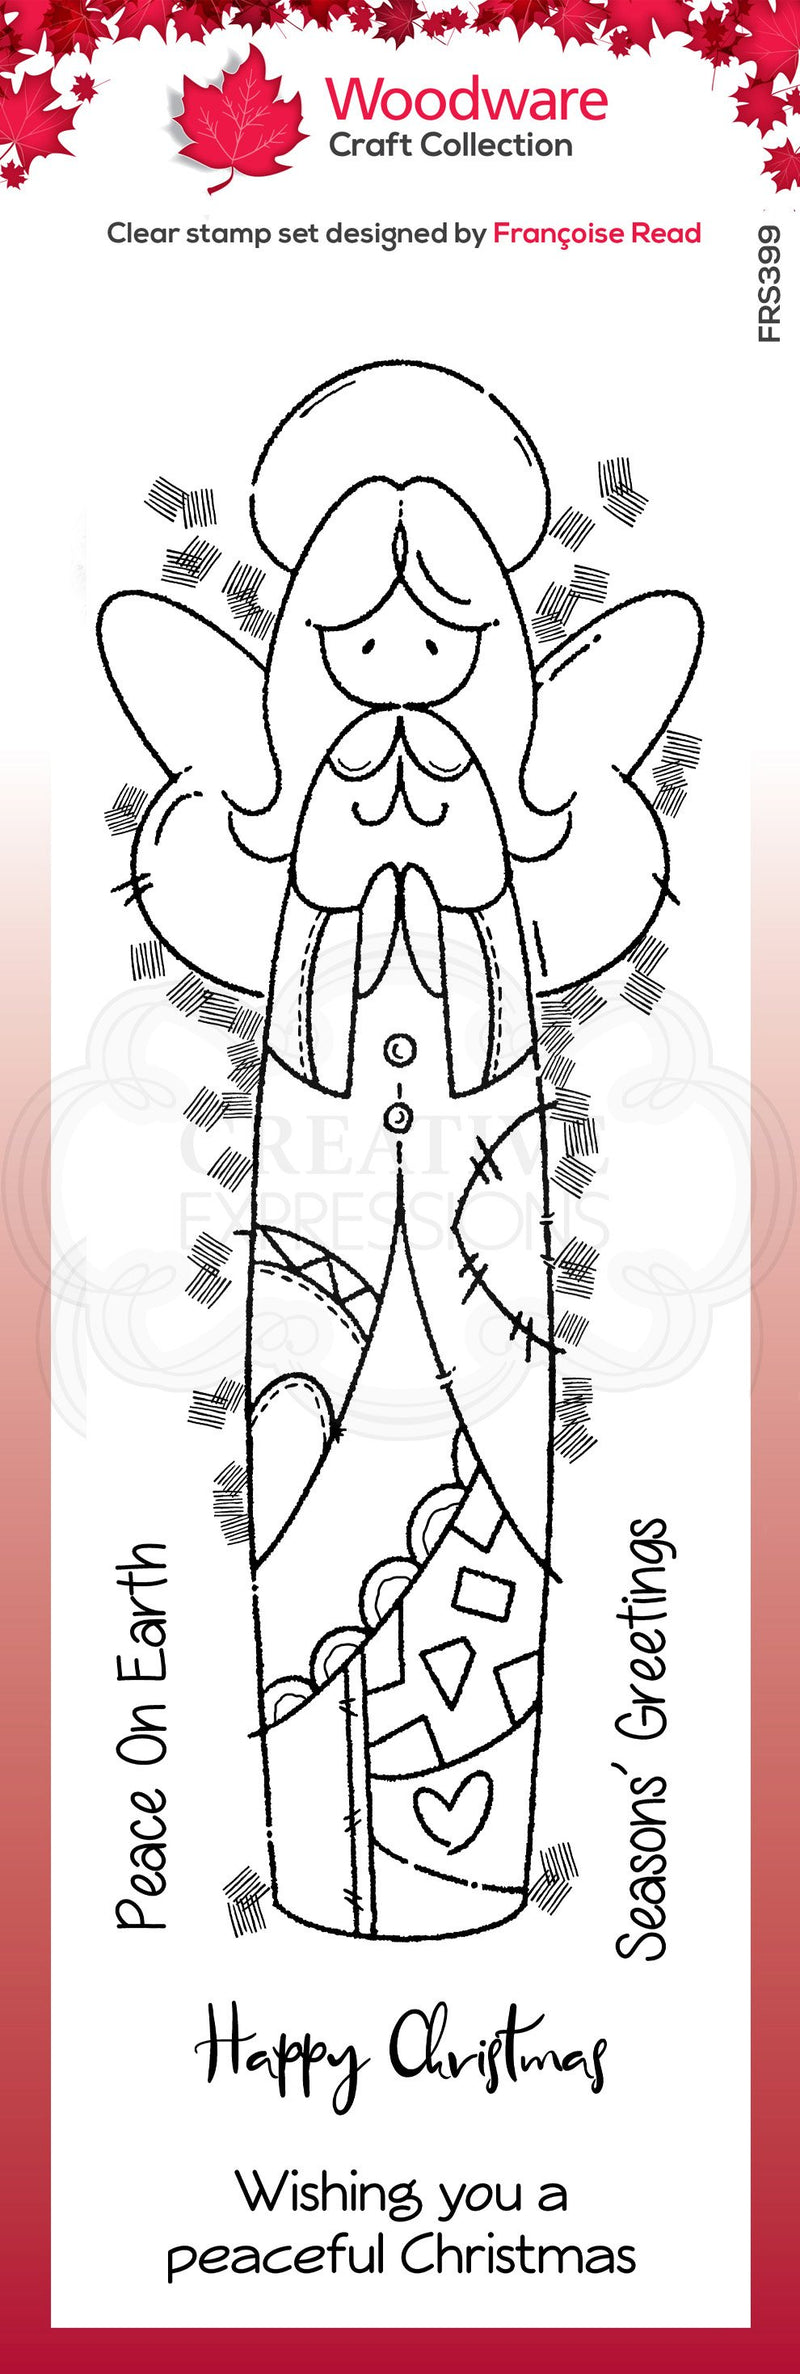 Woodware Clear Singles Patch Angel 4 in x 6 in Stamp